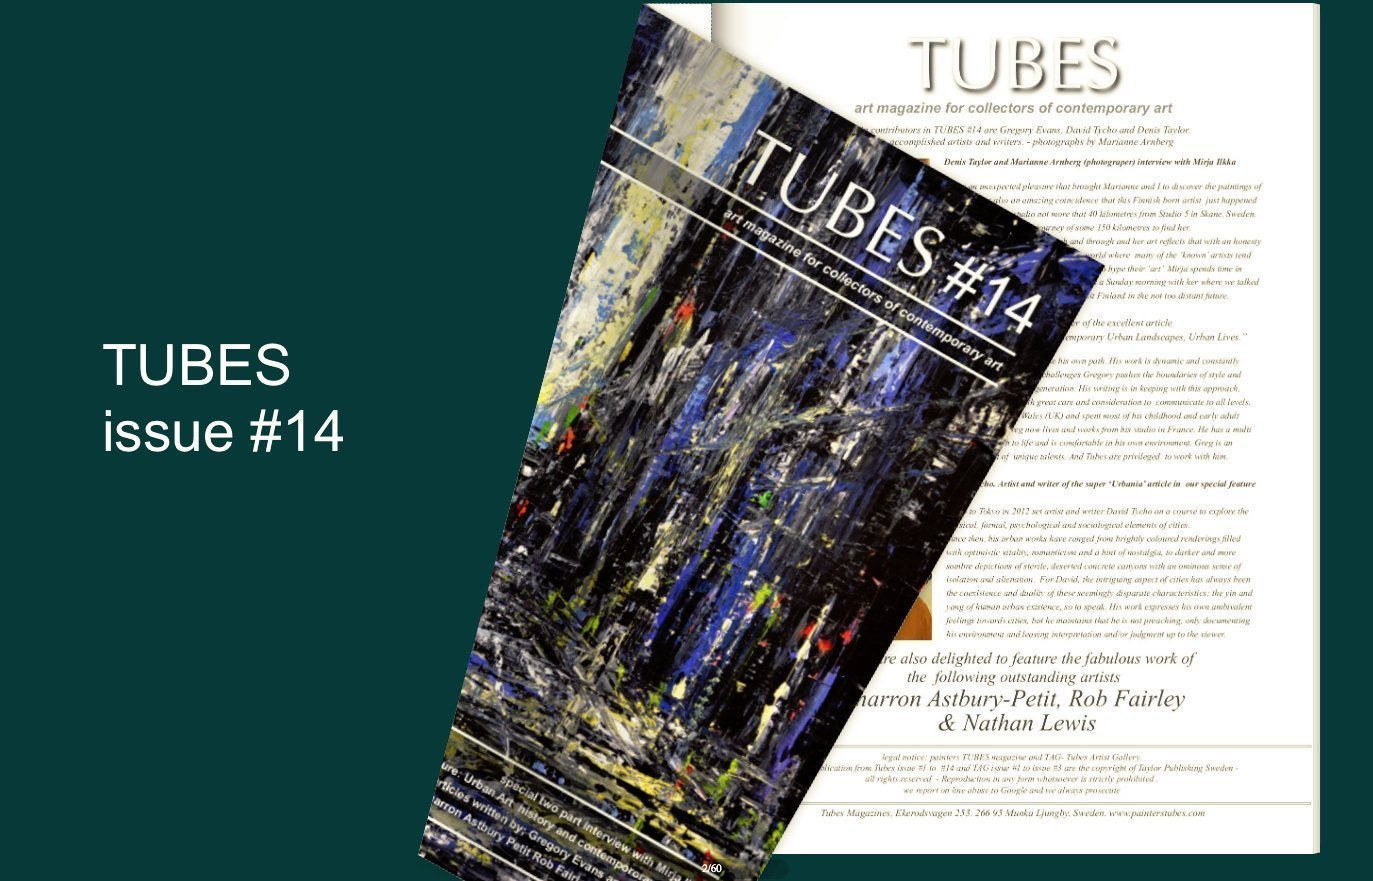 Tubes issue 14